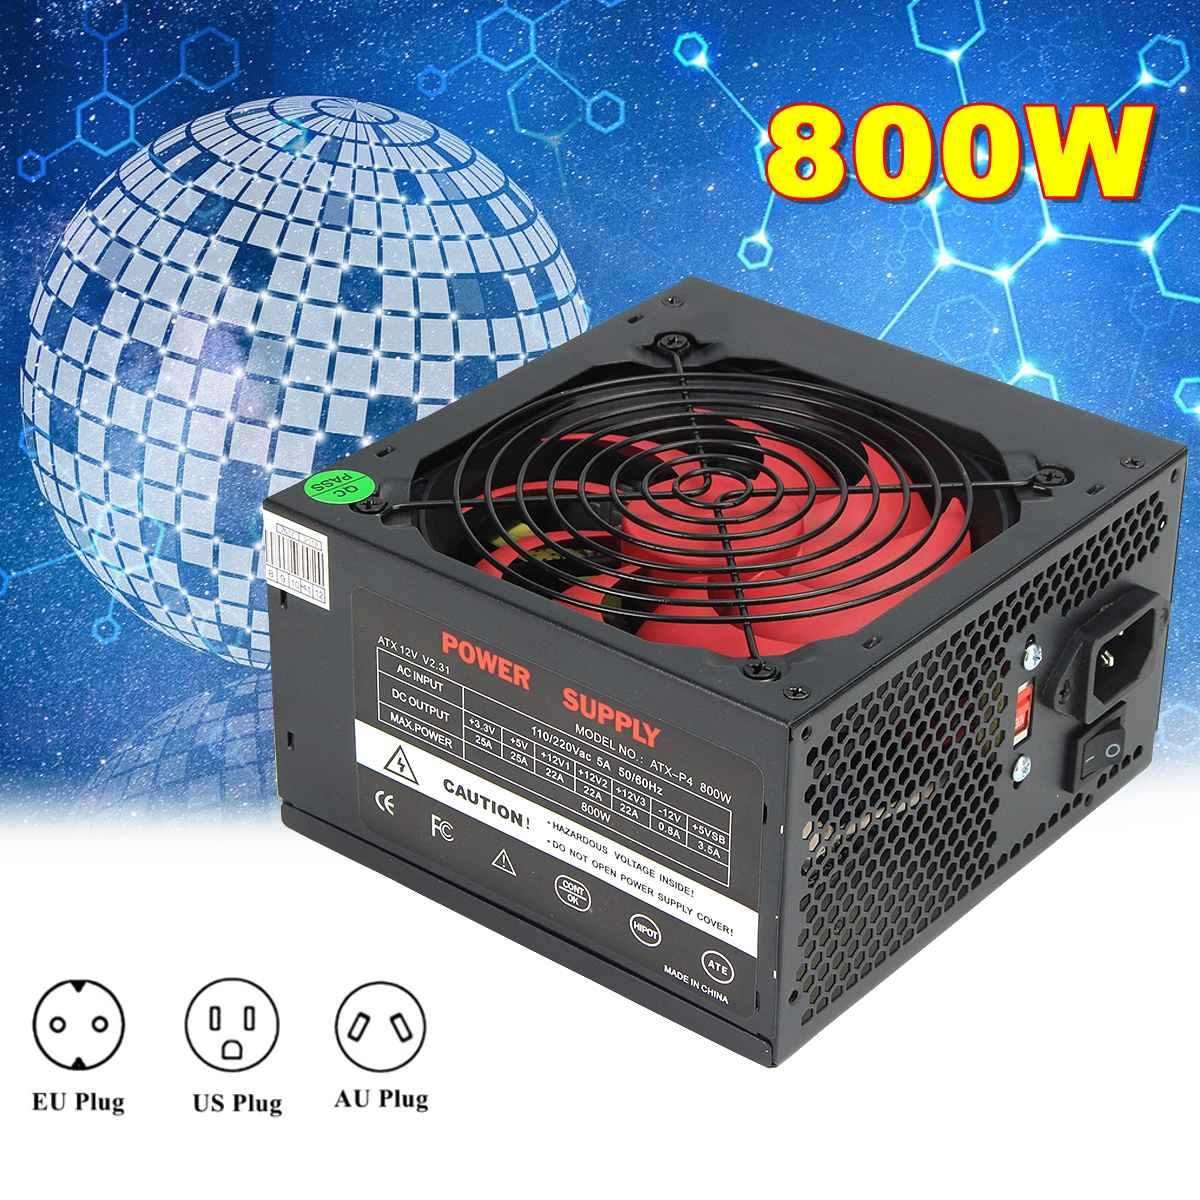 Noir 800 W 800 Watt alimentation 120mm ventilateur 24 broches PCI SATA ATX 12 V Molex connecter ordinateur alimentation 80 + or